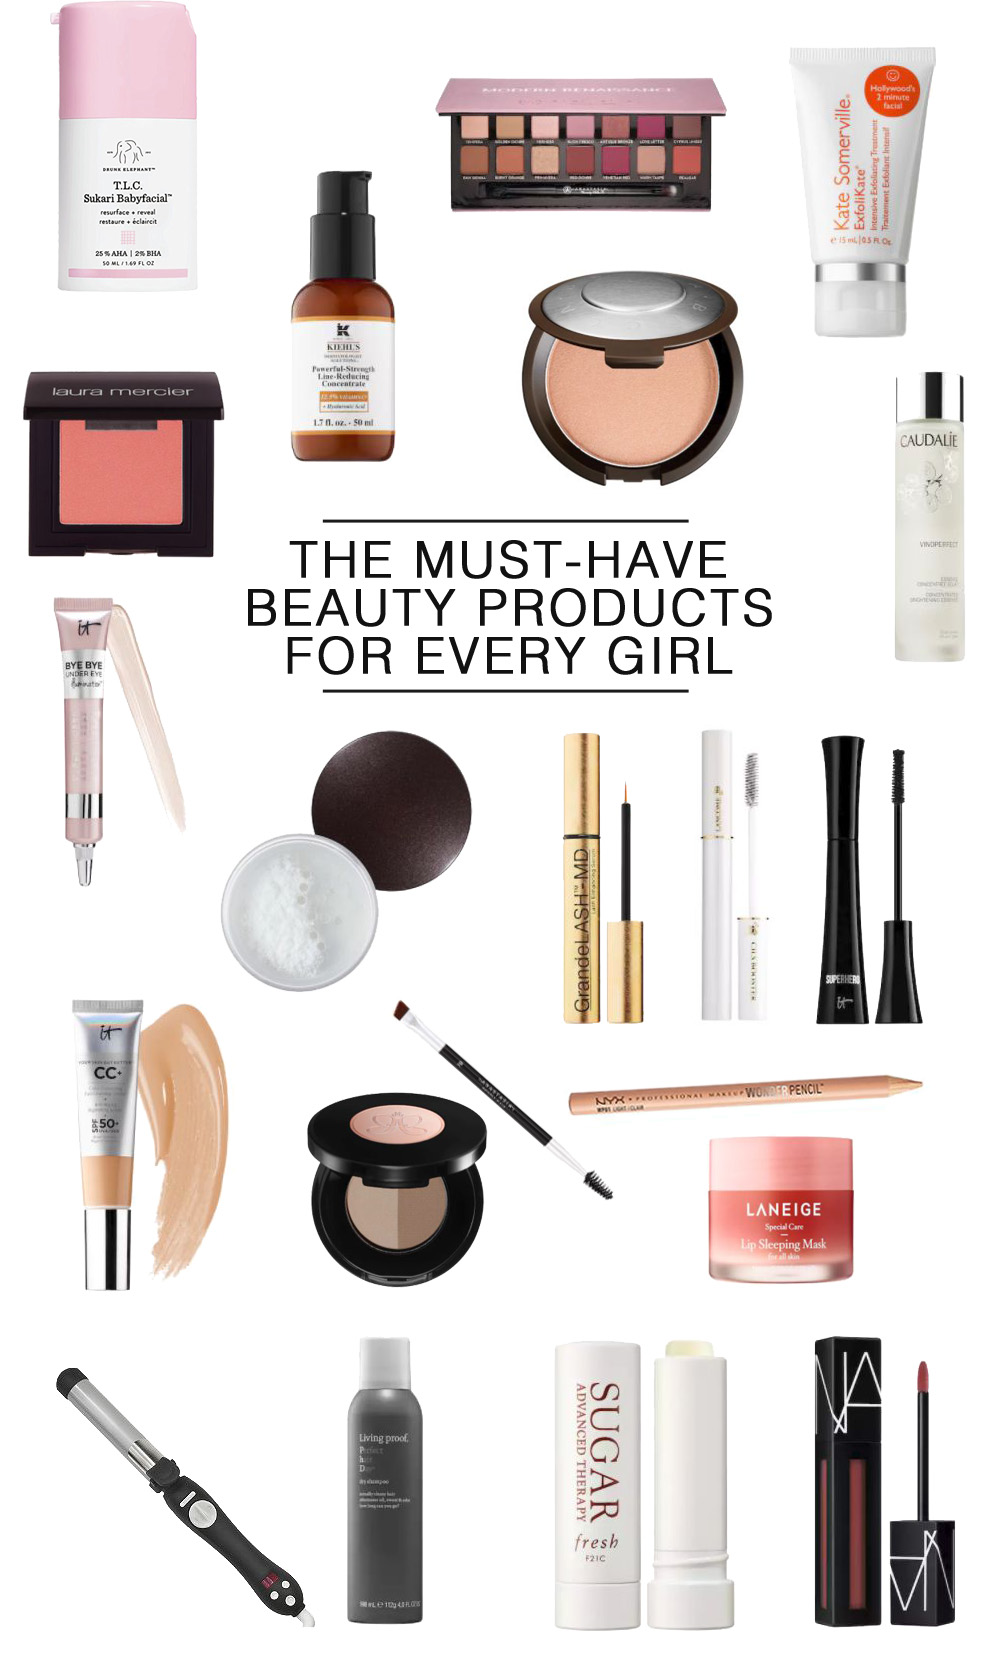 The Ultimate Beauty Products List for the Every Girl by popular Florida style blogger, The Modern Savvy